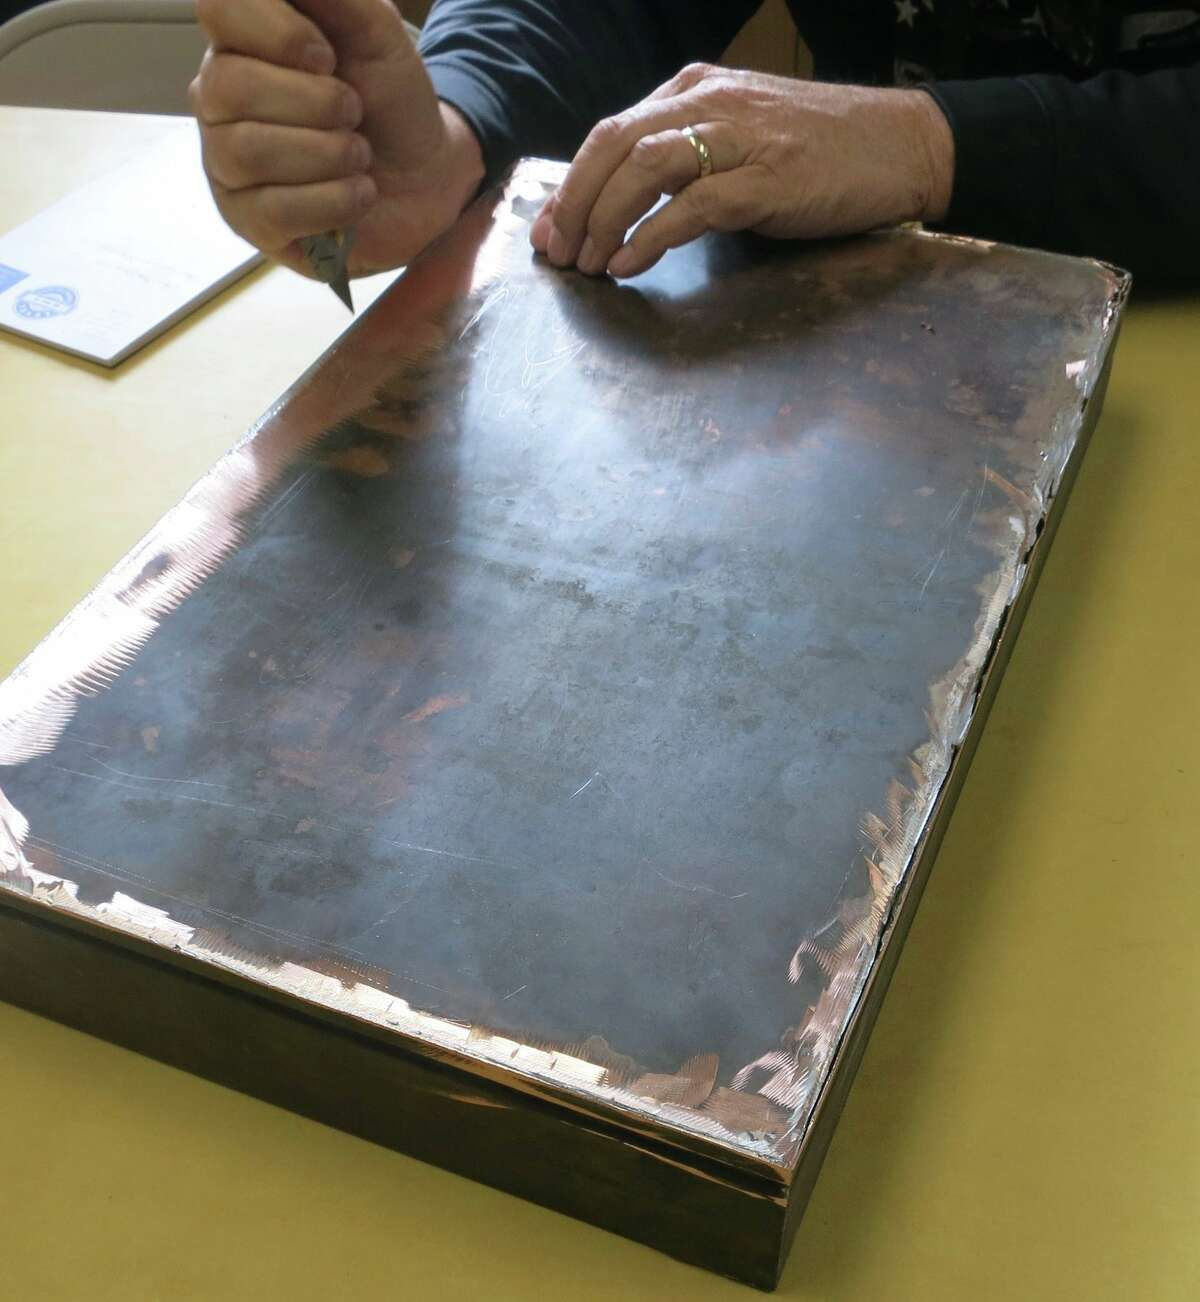 A time capsule from 1927 was opened on Friday in Oakland. It had been found during construction at an elementary school, and was filled mostly with paper ephemera from the era, says Liam O'Donoghue of East Bay Yesterday.